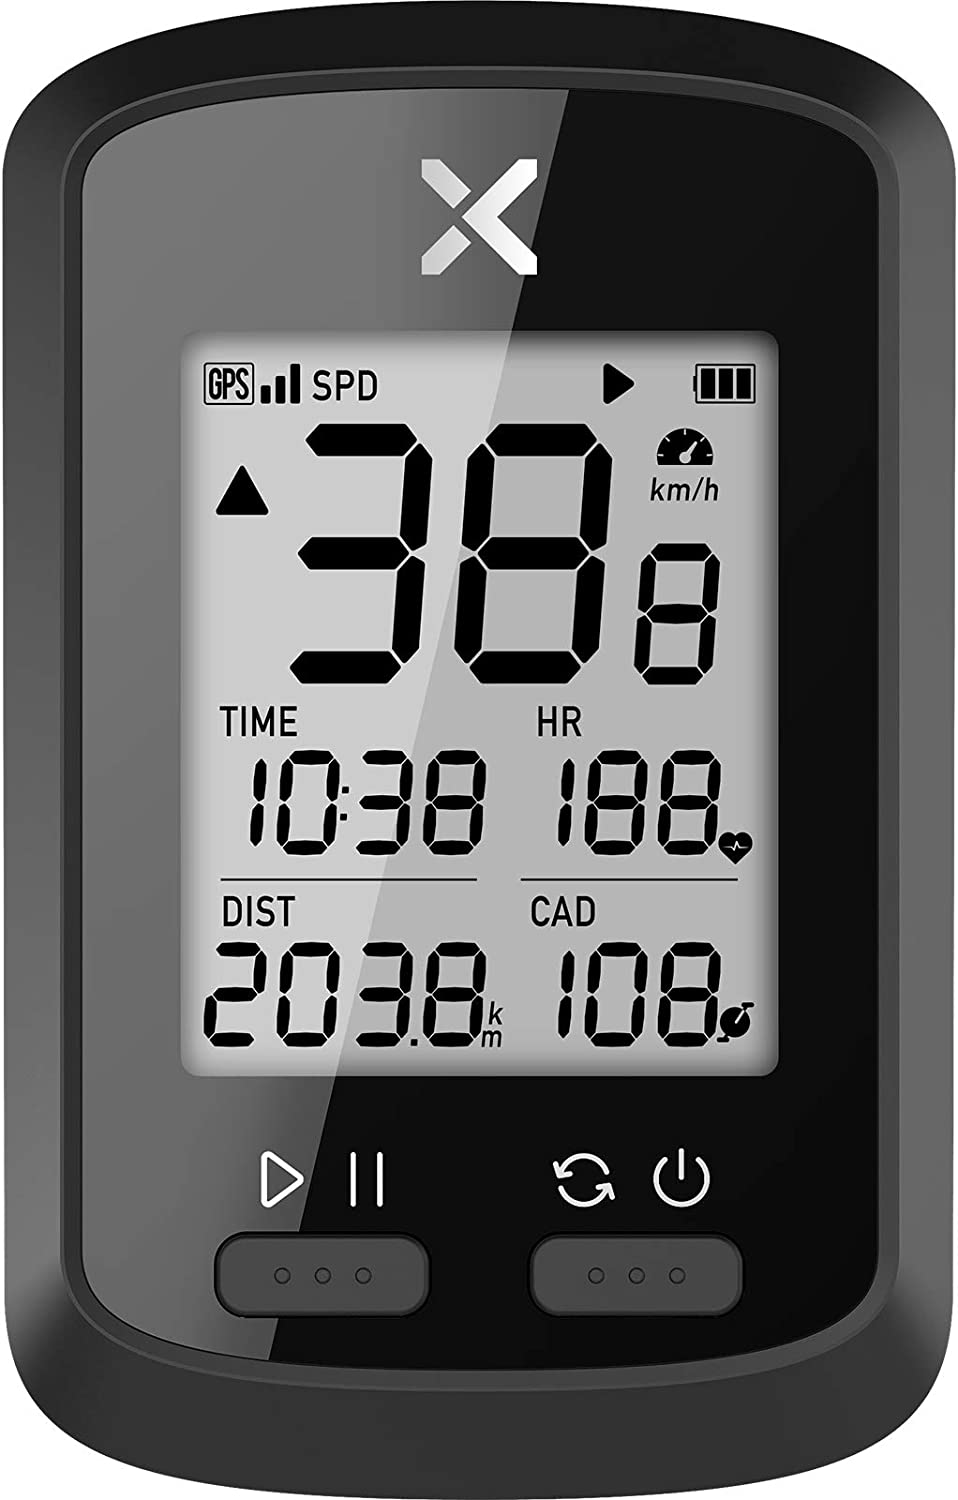 XOSS G+ GPS Bike Computer, Bluetooth ANT+ Cycling Computer, Wireless Bicycle Speedometer Odometer with LCD Display, Waterproof MTB Tracker Fits All Bikes (Support Heart Rate Monitor & Cadence Sensor) : Sports & Outdoors